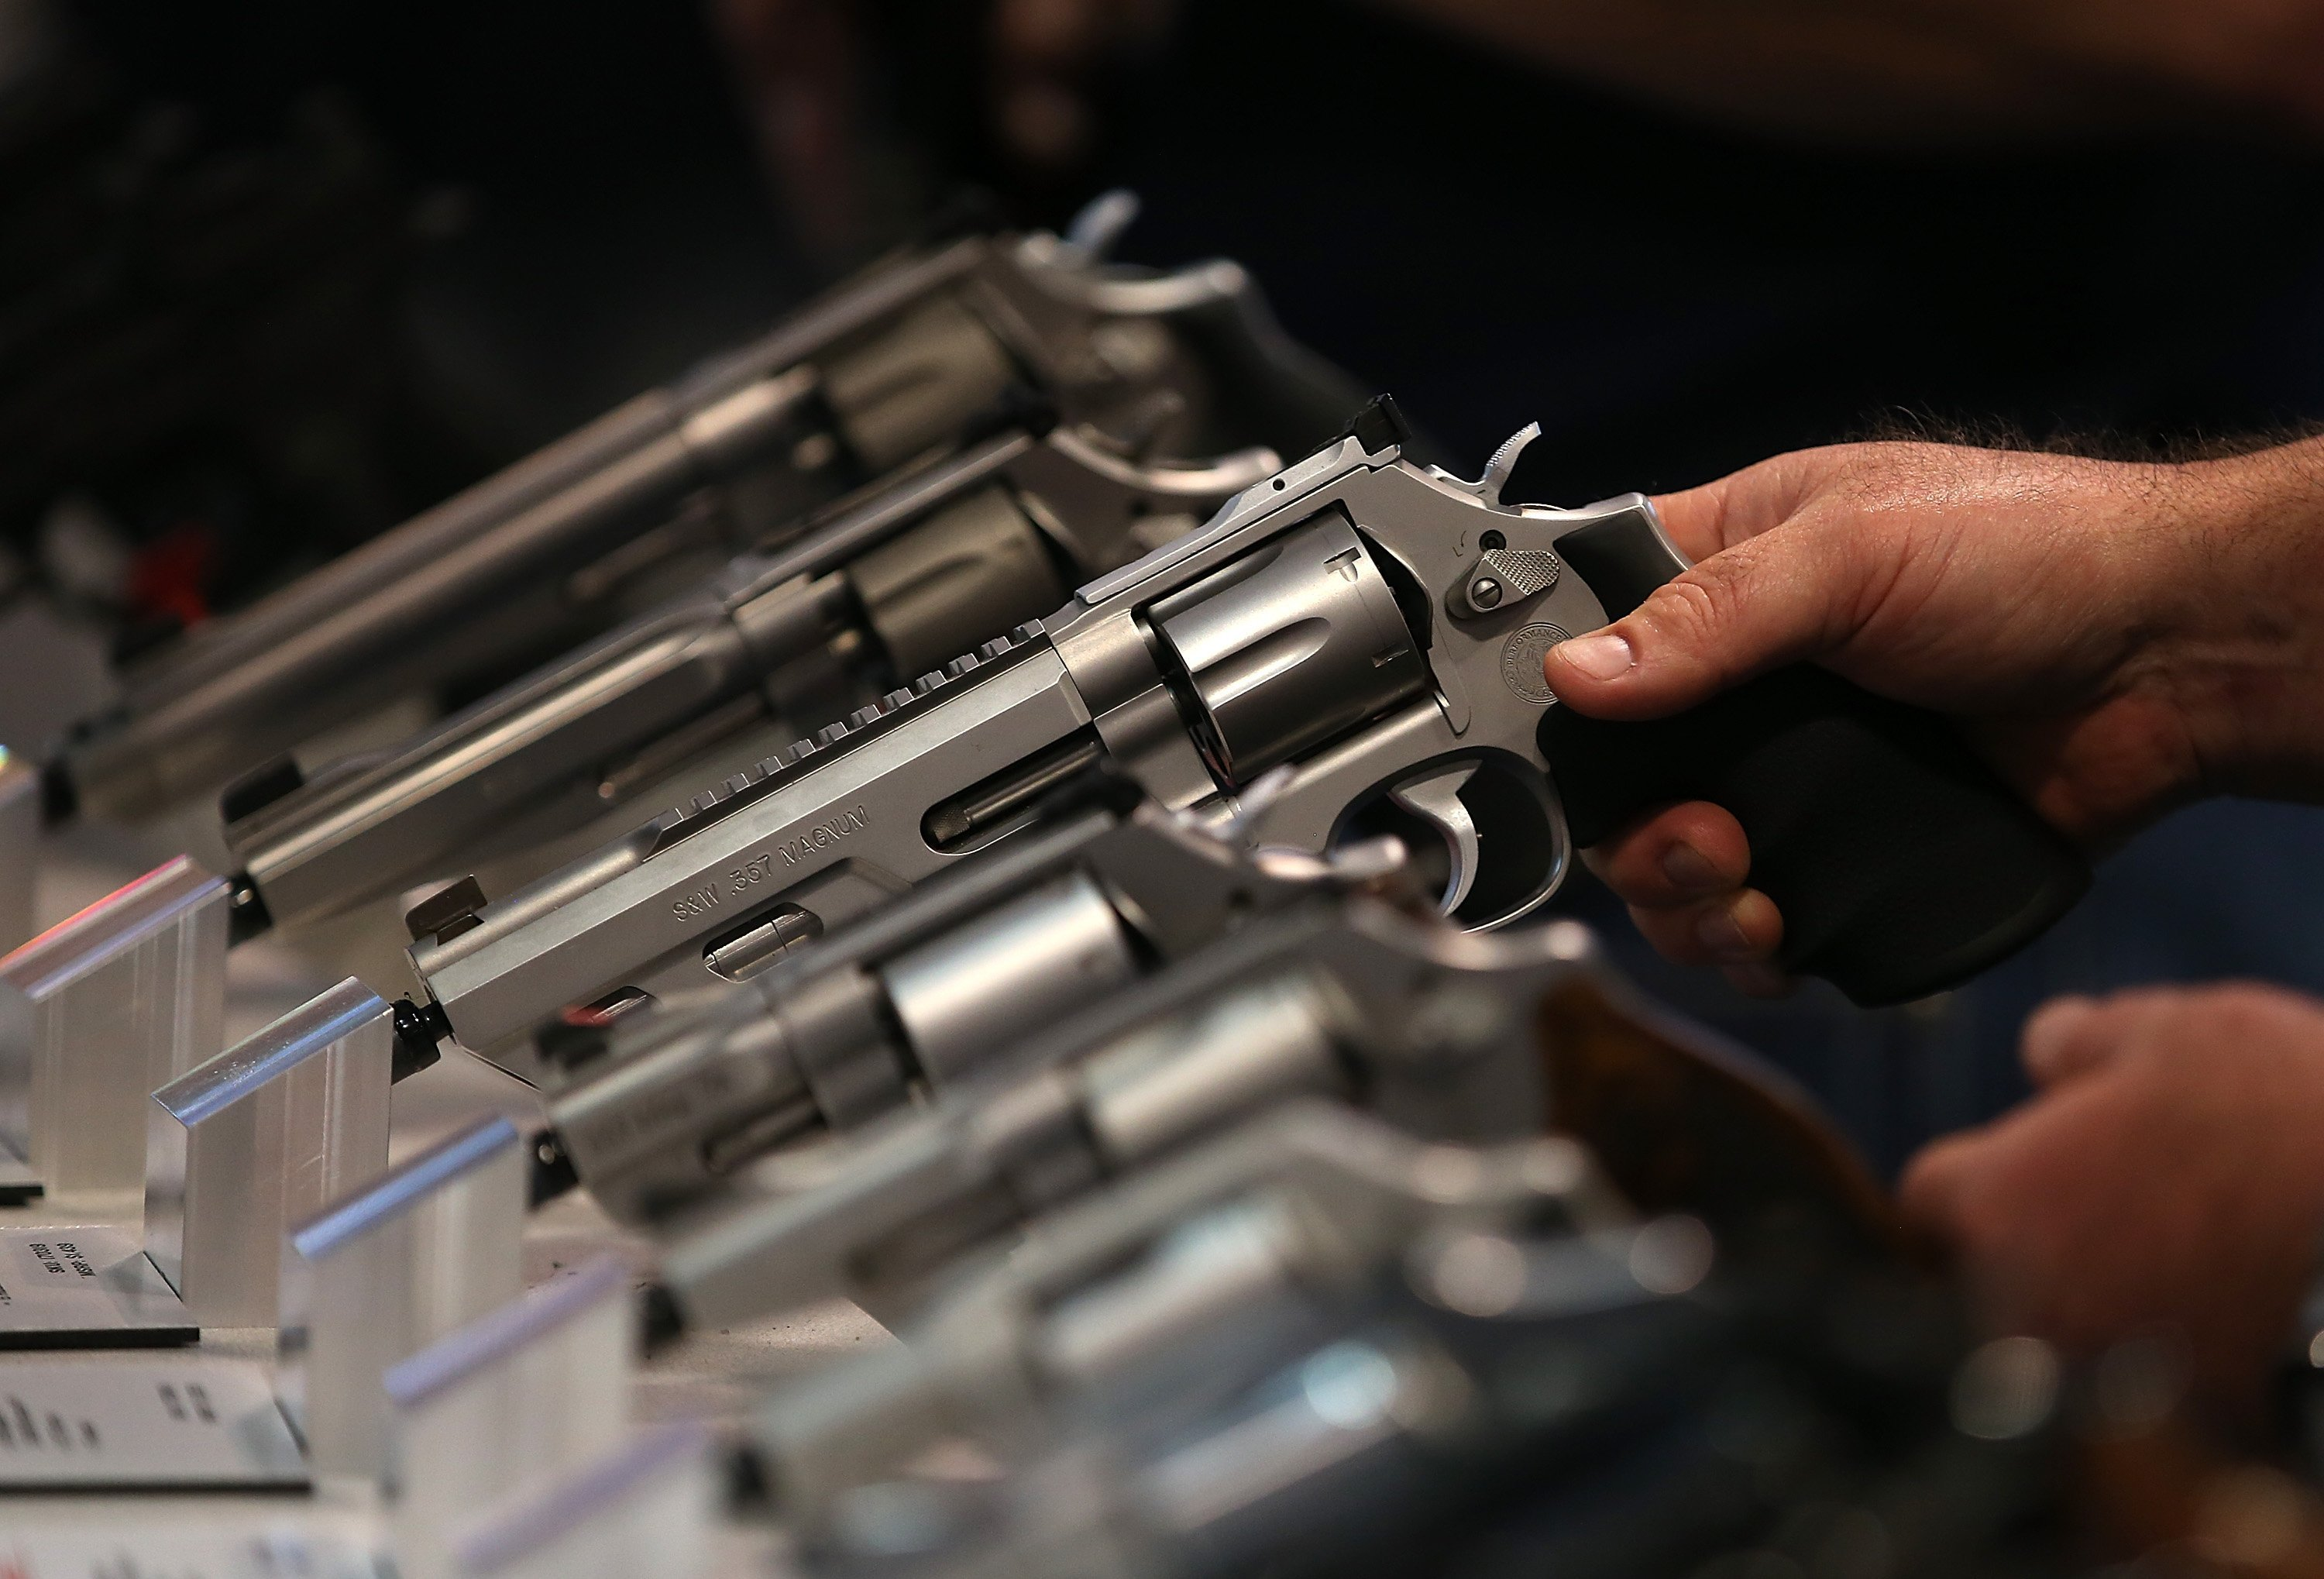 Trump proposes ban on rapid-fire gun devices